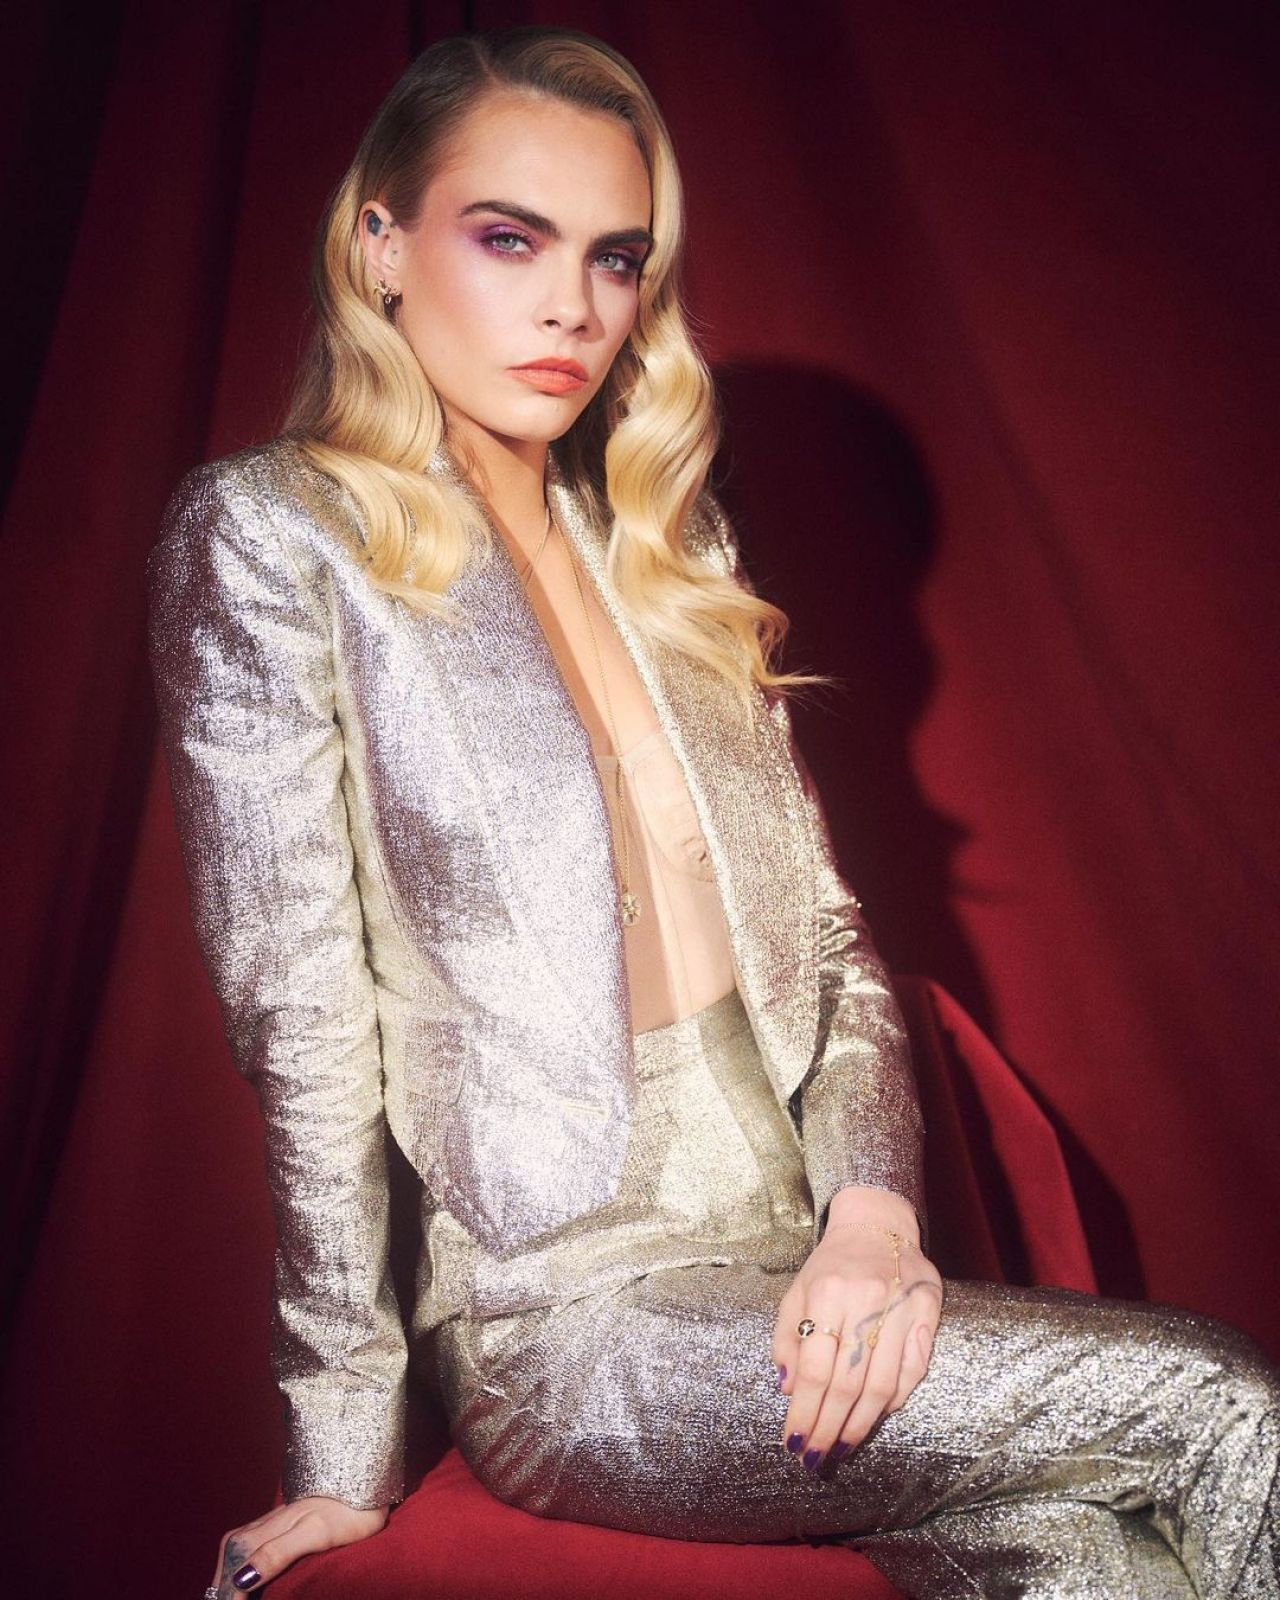 Cara Delevingne photo #974446